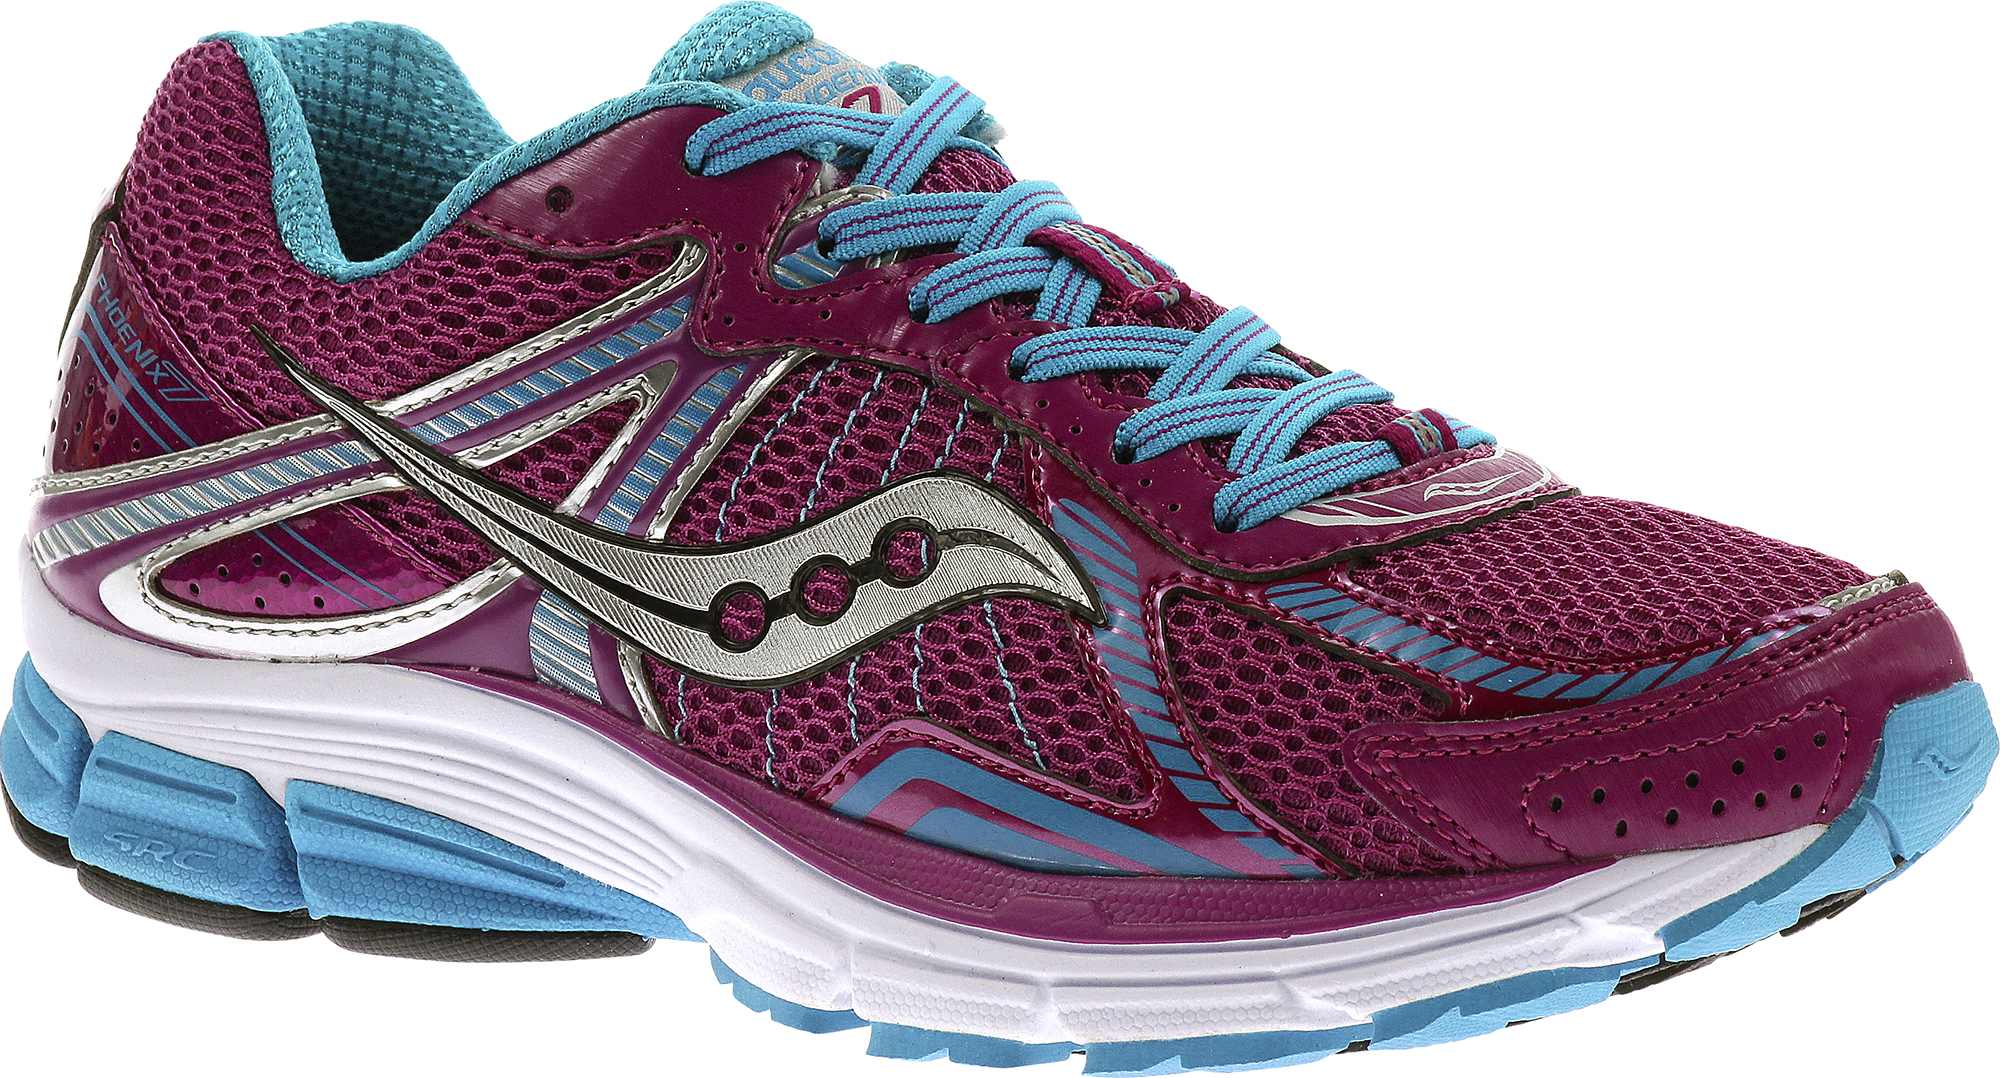 saucony guide 8 running shoes - ss15